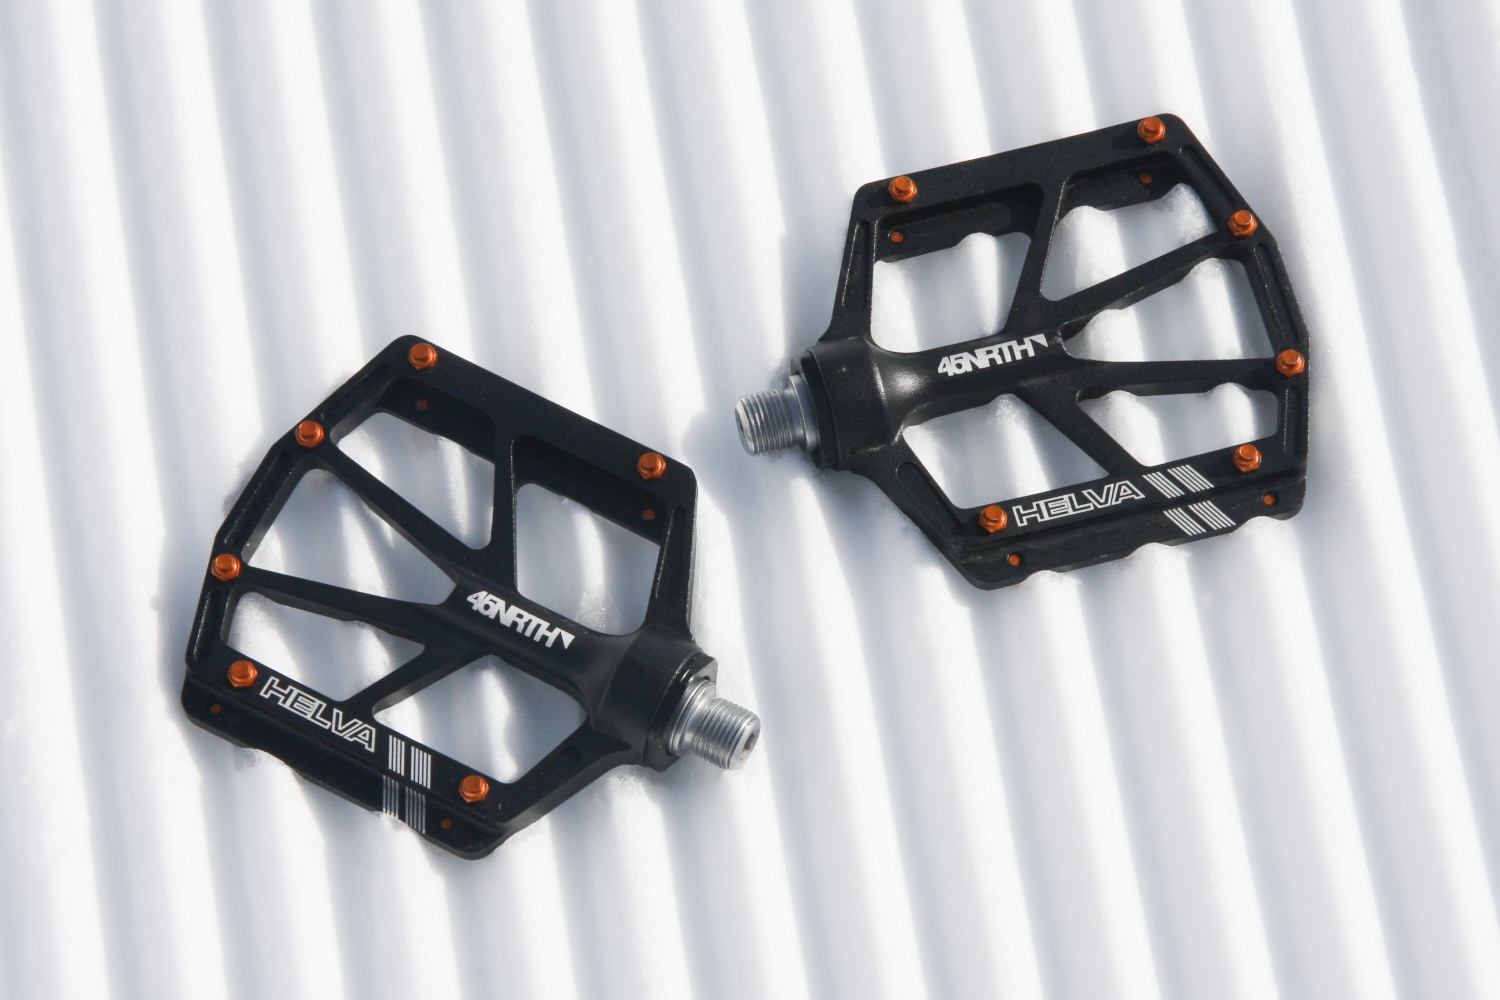 A narrow profile, six pins per side, and an open design make the 45NRTH Helva Snowshed Winter Pedals a great option for riding when snowflakes are flying. Photo by Jason Sumner